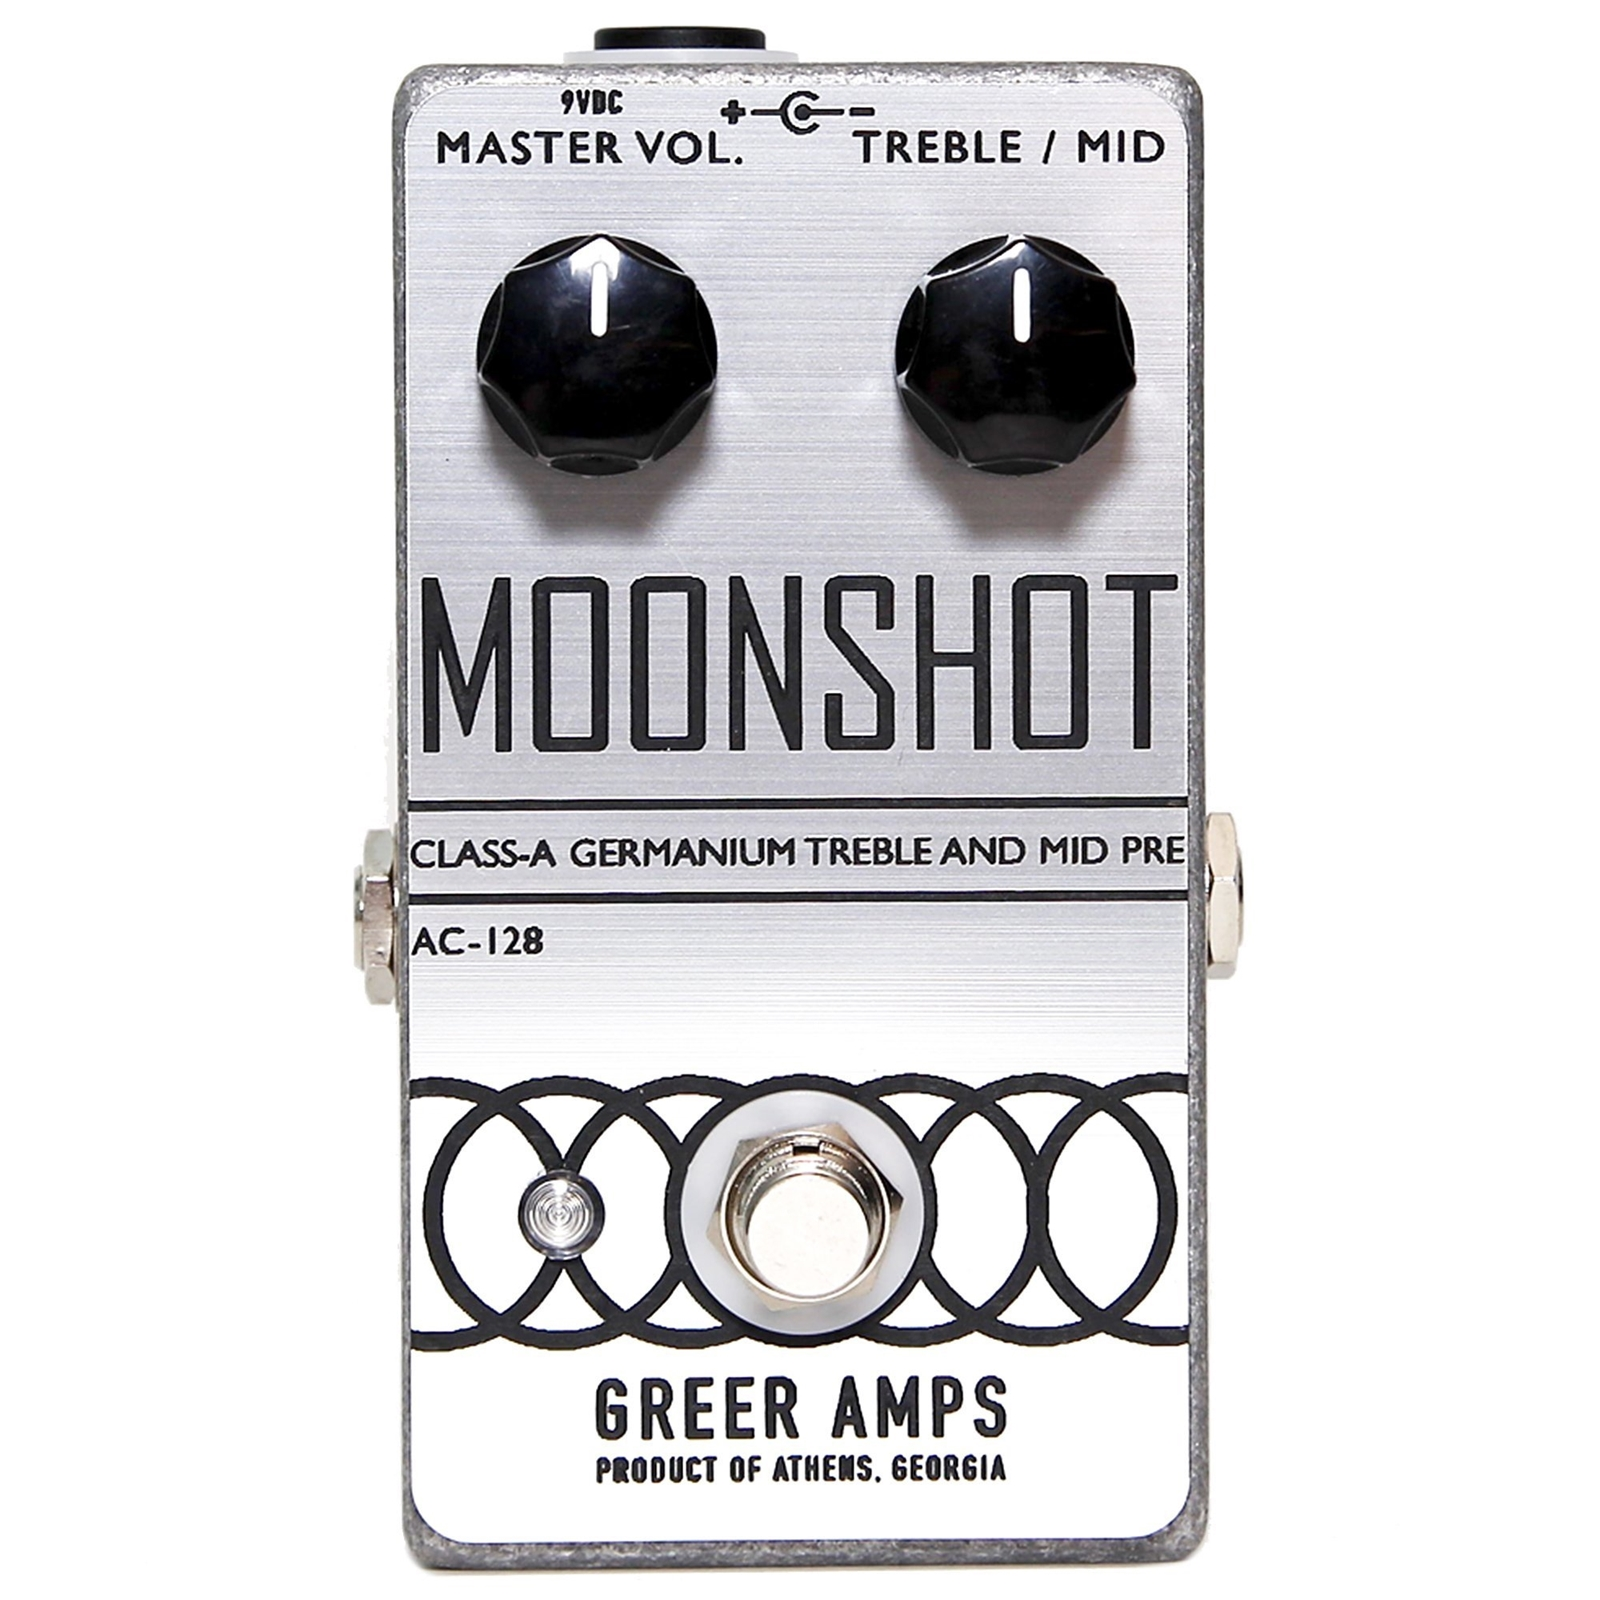 Greer Amps Moonshot Class-A Germanium Treble and Mid Pre Pedal